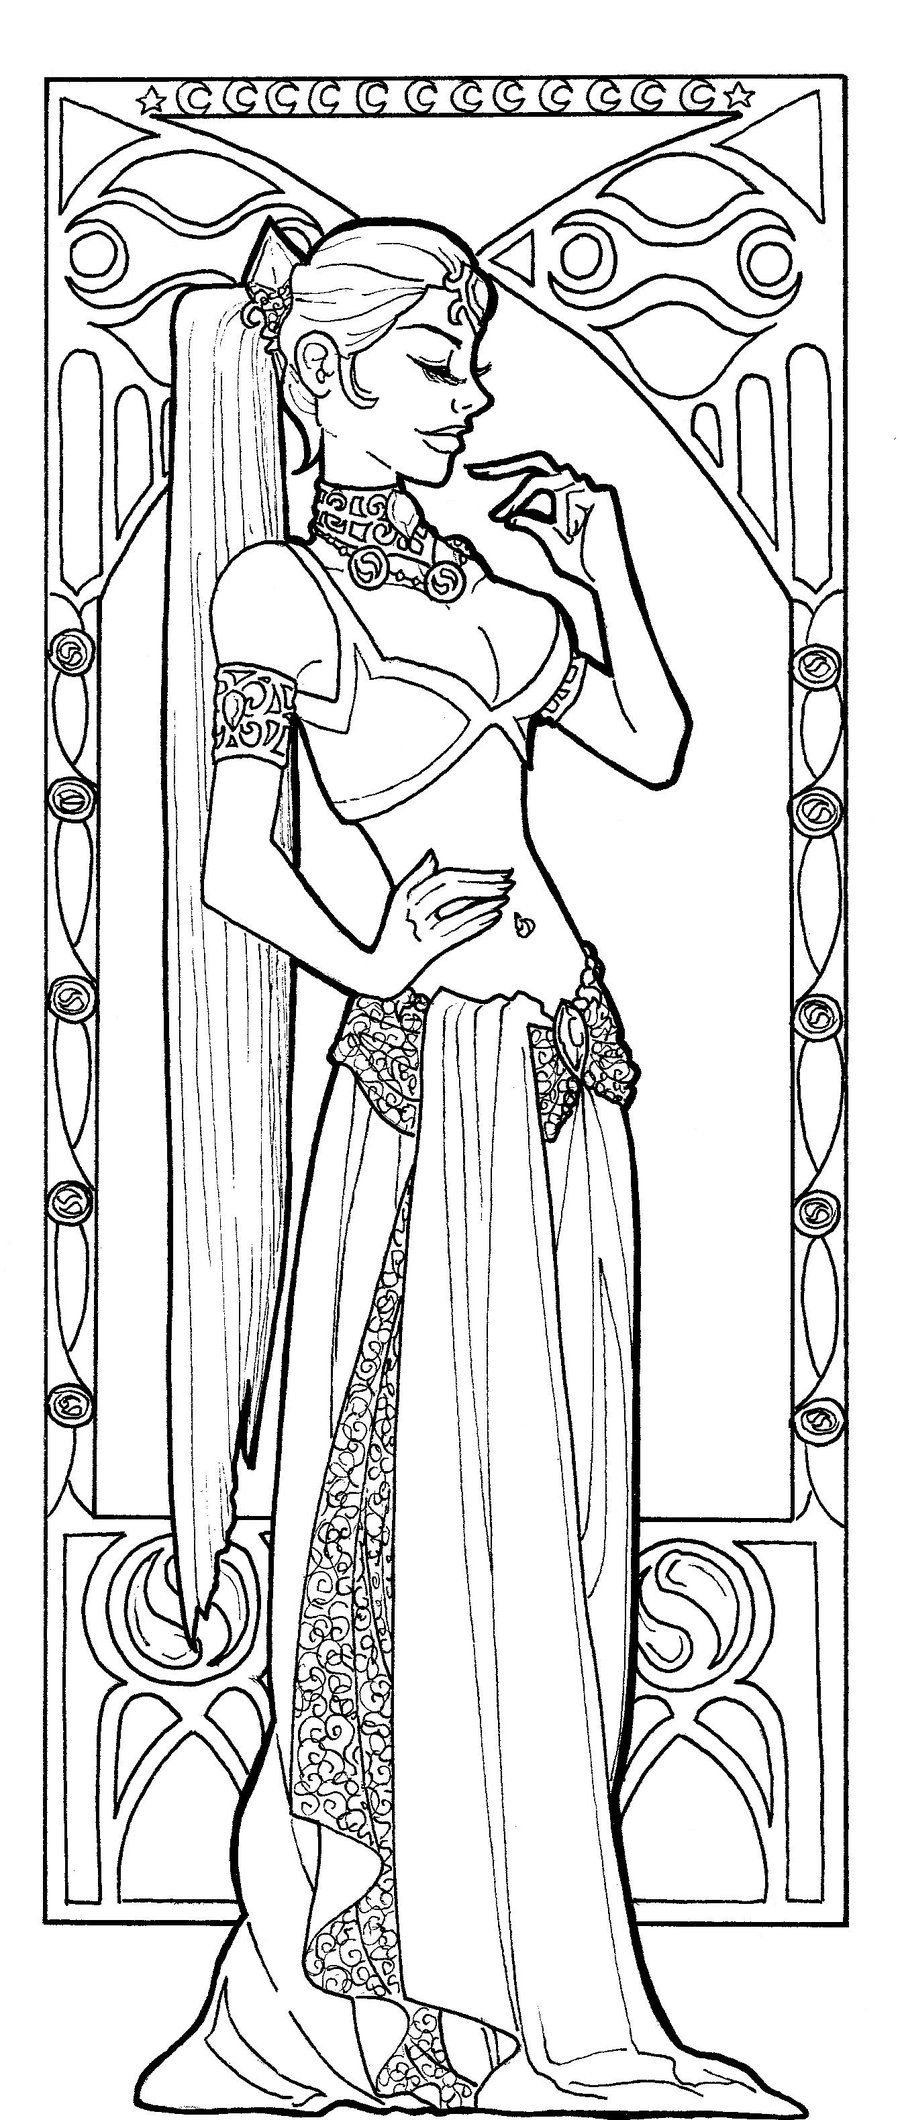 free art coloring pages mat want to marry disney princess coloring pages free pages coloring art